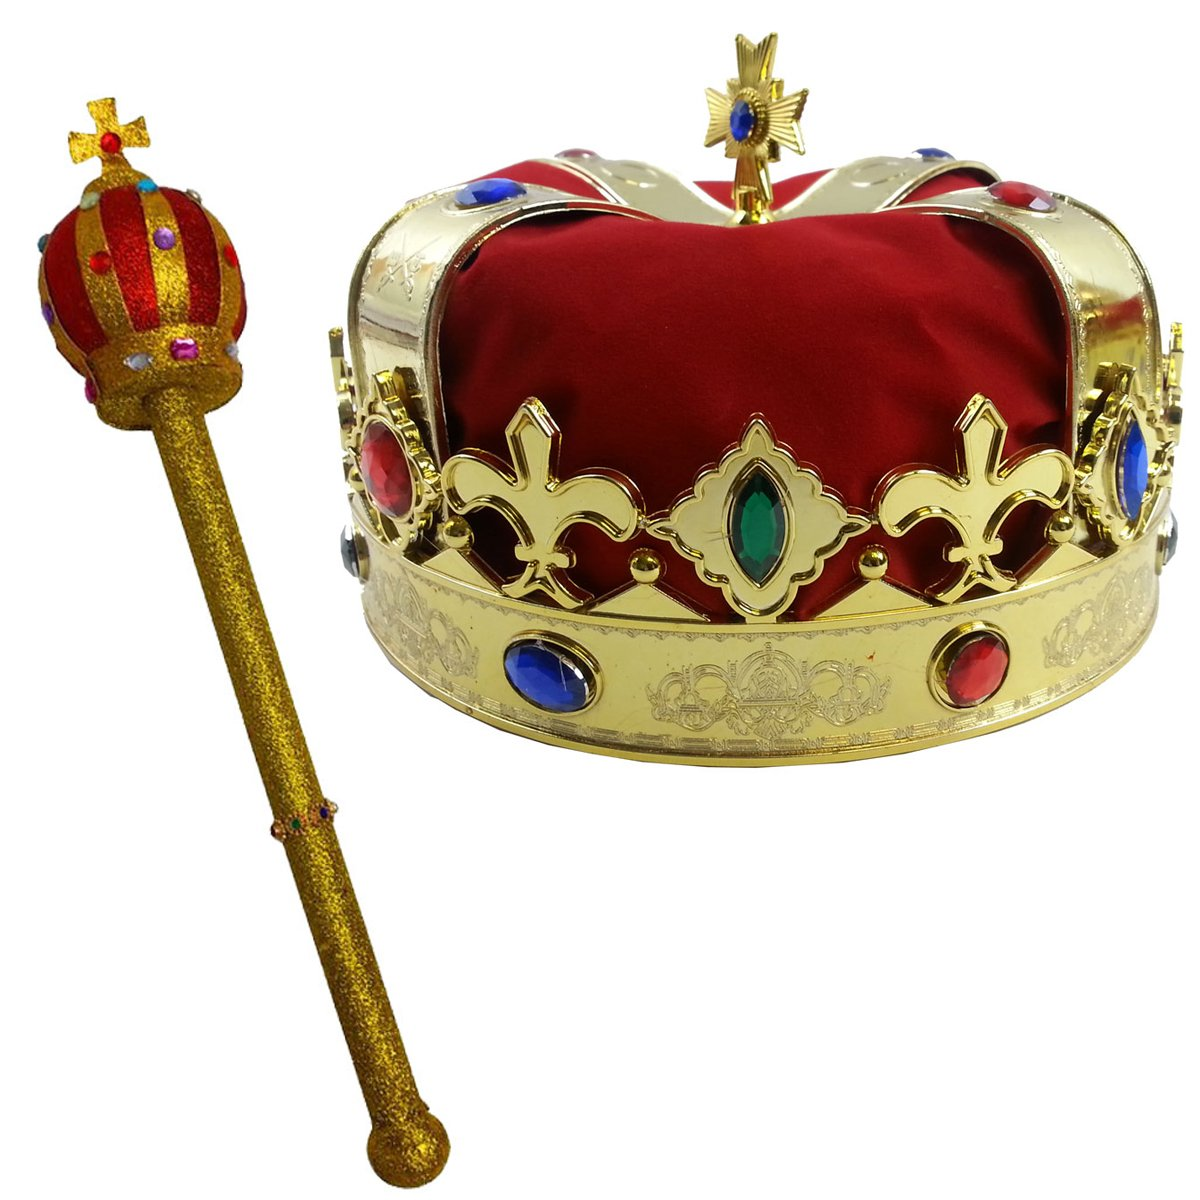 Crown and Scepter Funny Party Hats Kings Crown Costume Dress Up Set Royal Kings Crown Costume Hats